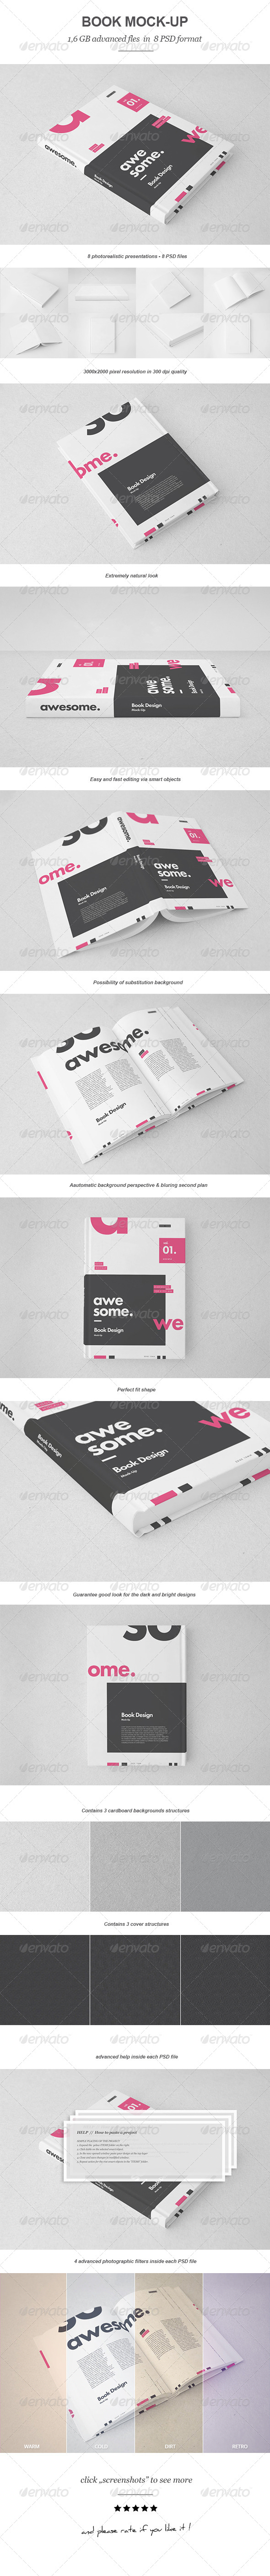 GraphicRiver Book Mock-up 7148762